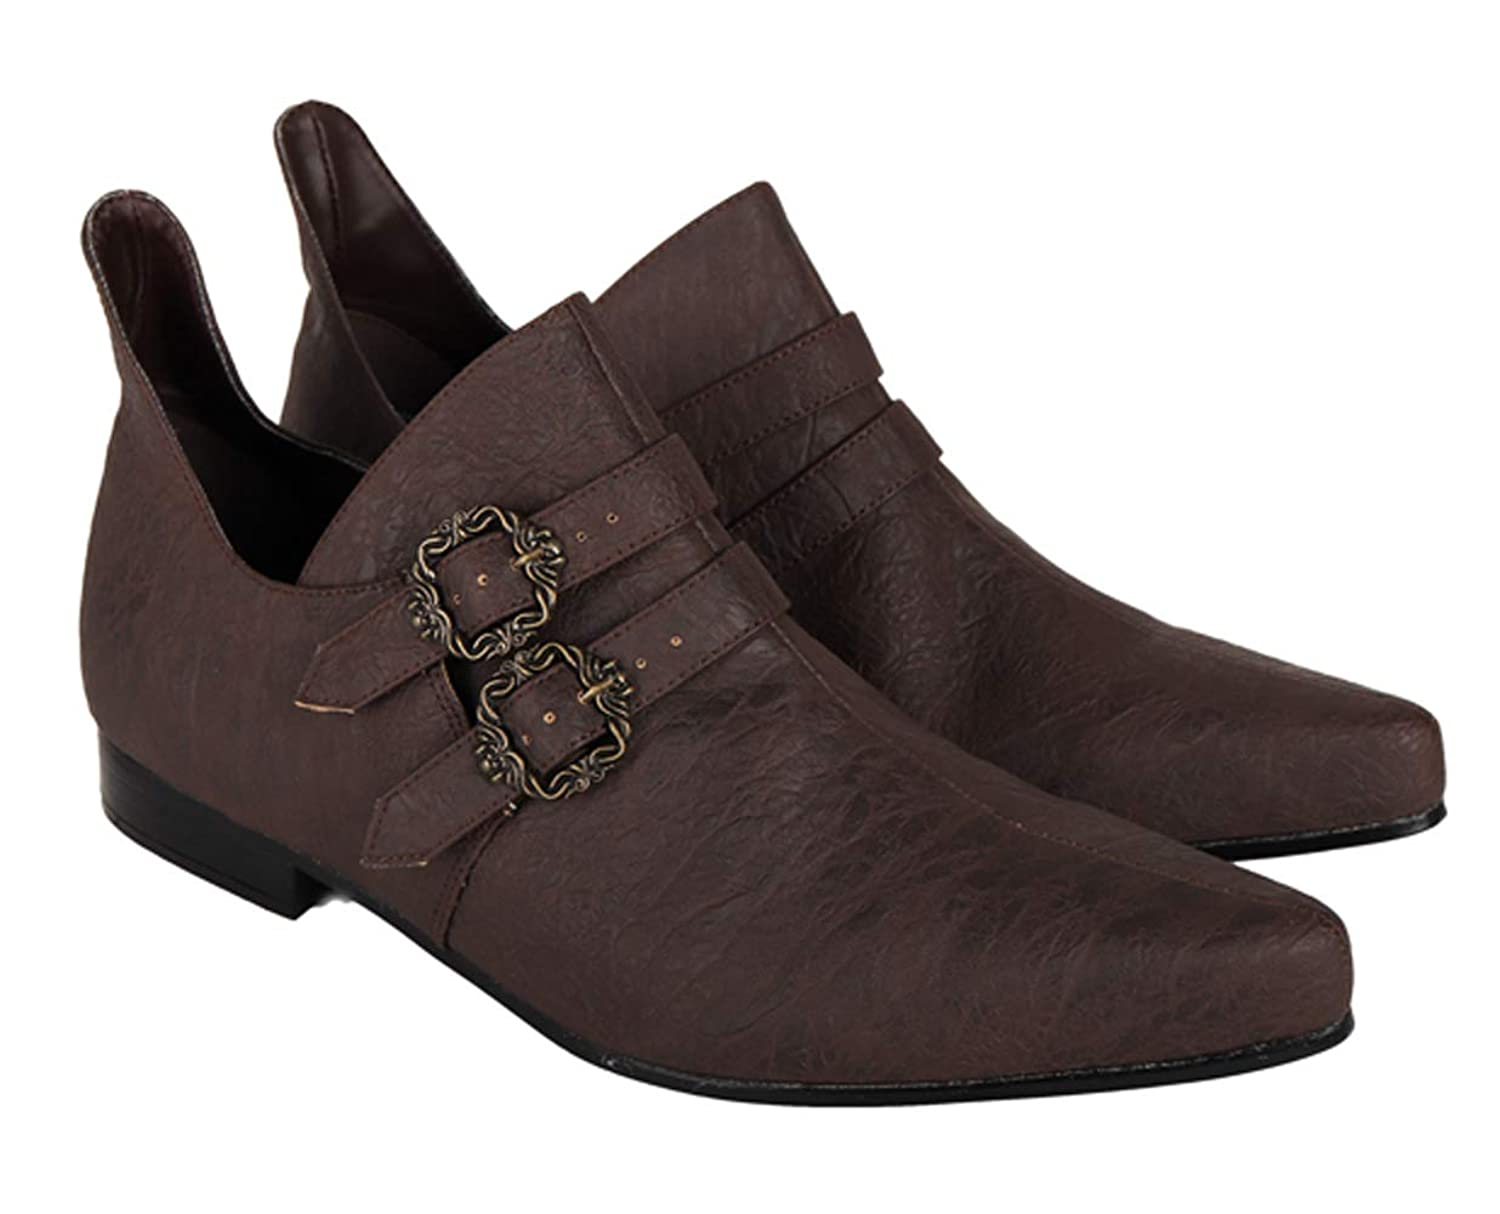 Renaissance Shoes Faire Short Boot Suede Adult Halloween Costume Shoes 2 COLORS